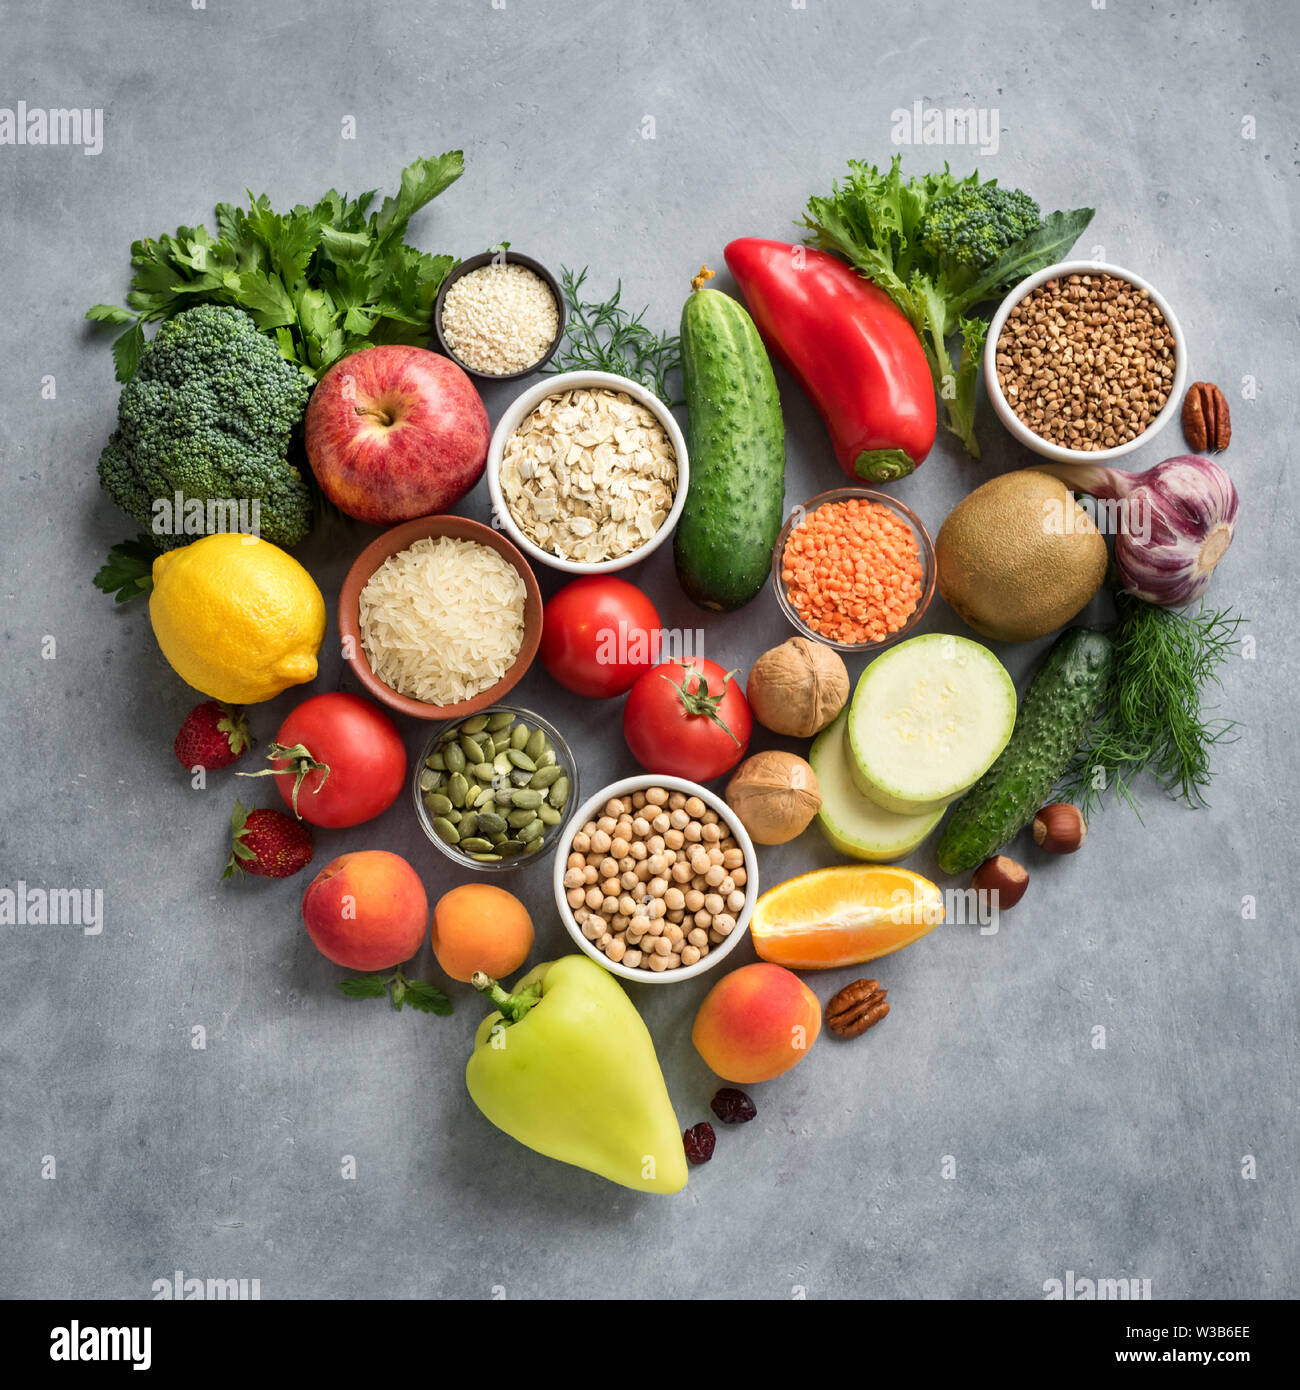 Healthy Vegan Food Background - organic food in heart shaped flat lay, top view. Healthy clean eating, diet  or detox concept. Stock Photo